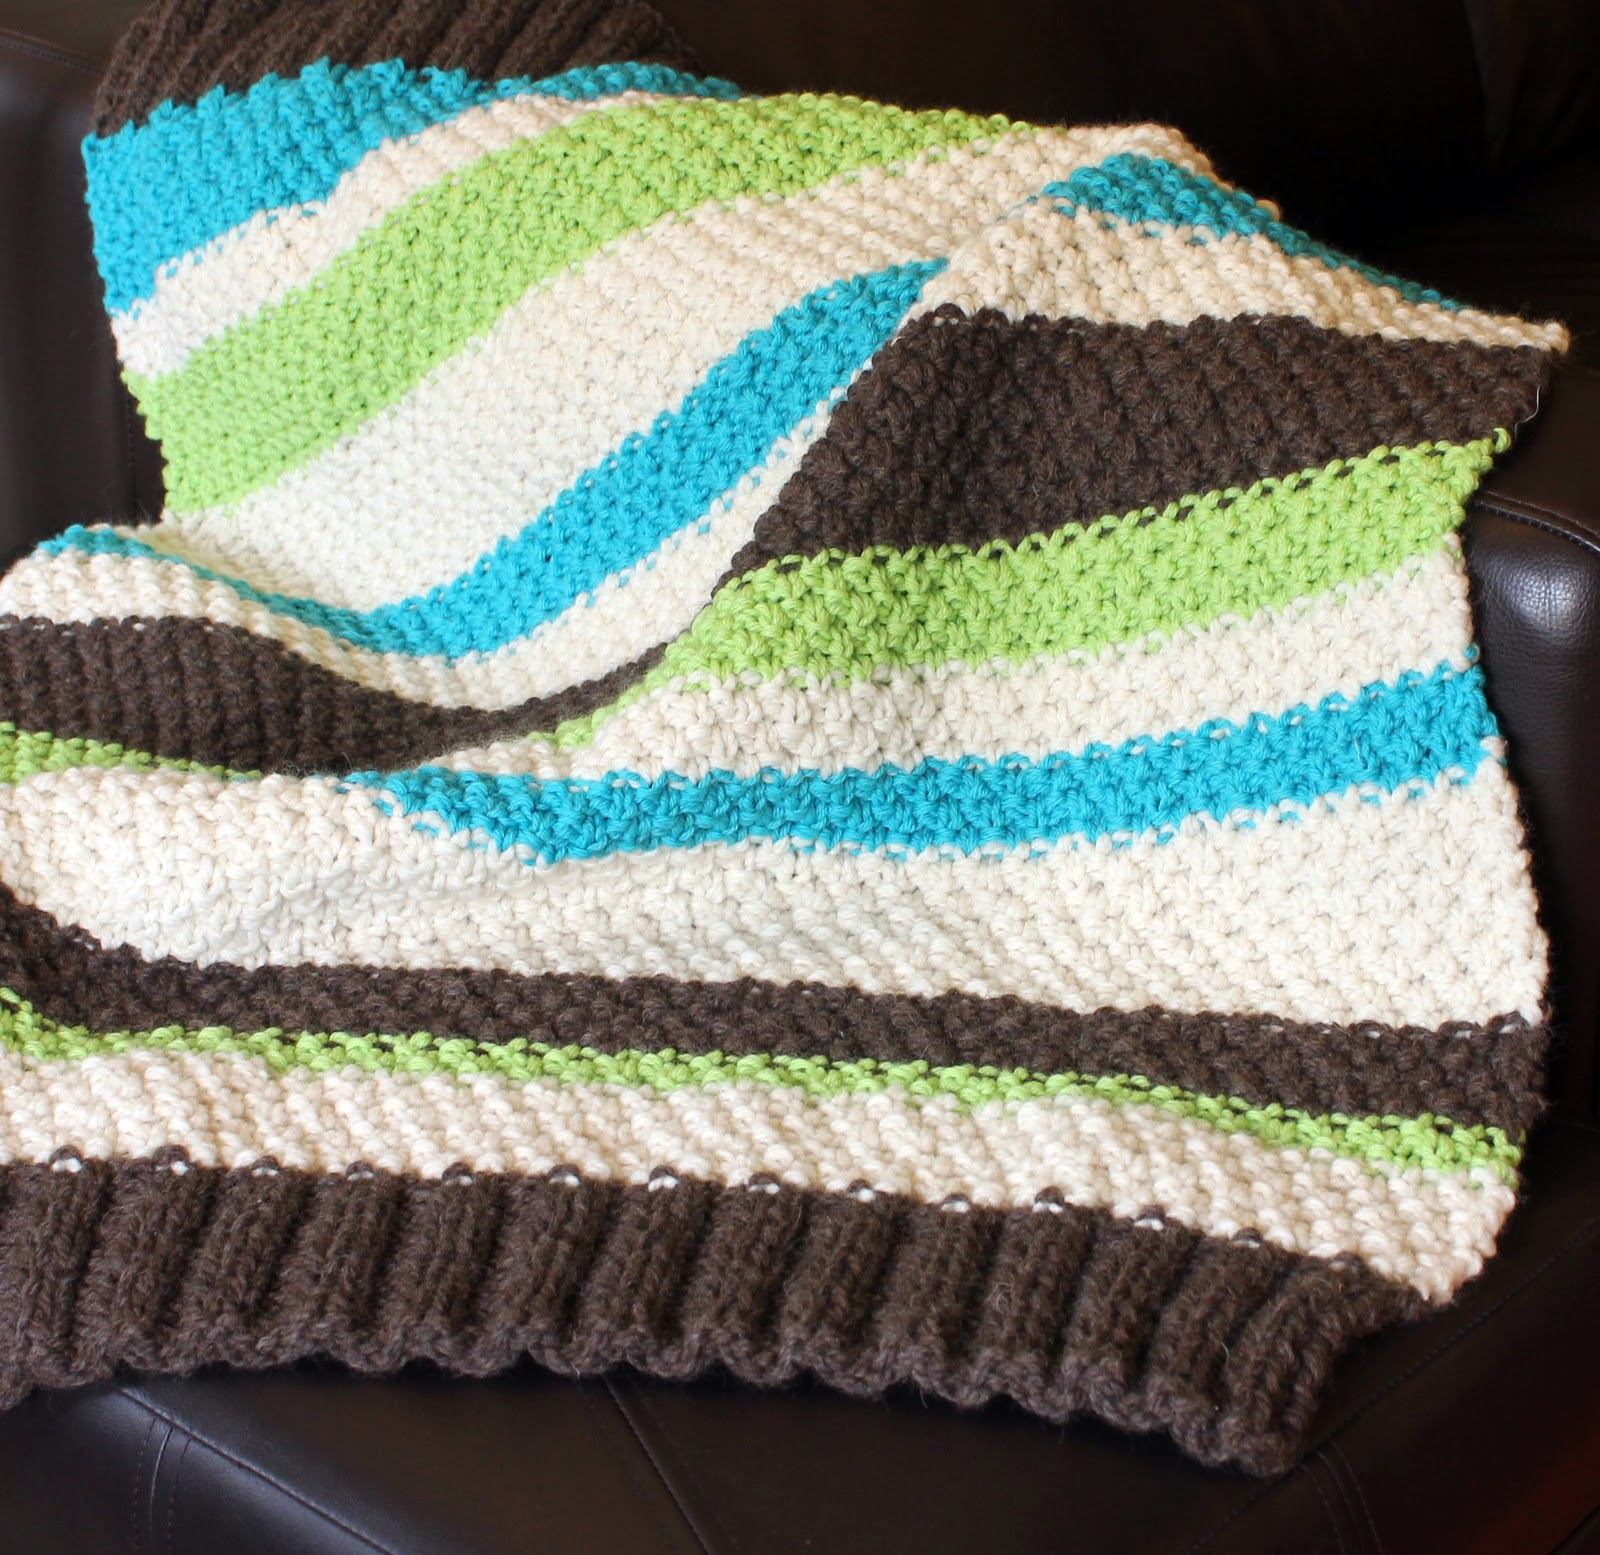 Easy Baby Blanket Knitting Pattern for Beginners - with Free Printable